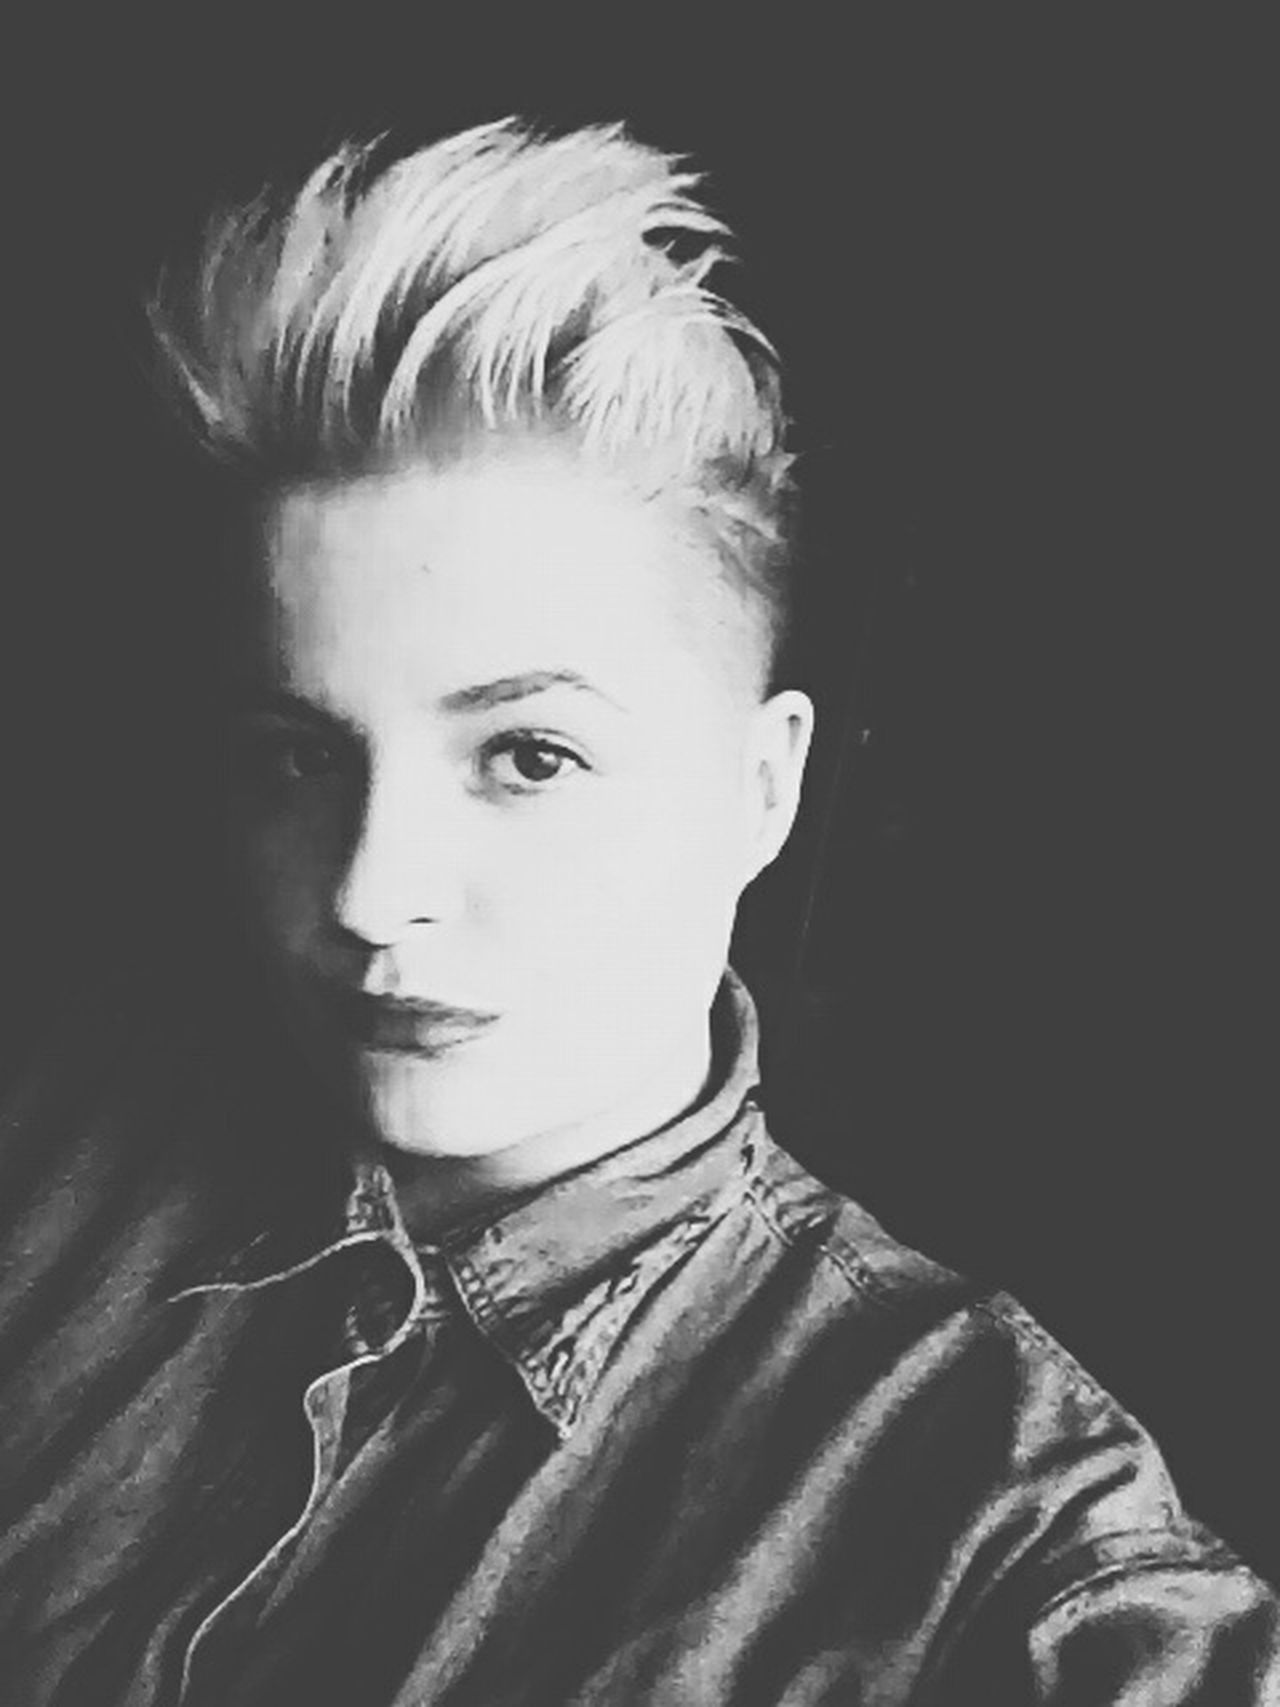 Hi! Its Me Hairstyle Blonde ♡ Blonde Girl Make Up Black & White Photo Lithuania Lithuanian Girl Bisexual Girl Panevėžys FolowMe ✌ Folowforfollow Love Your World 😚